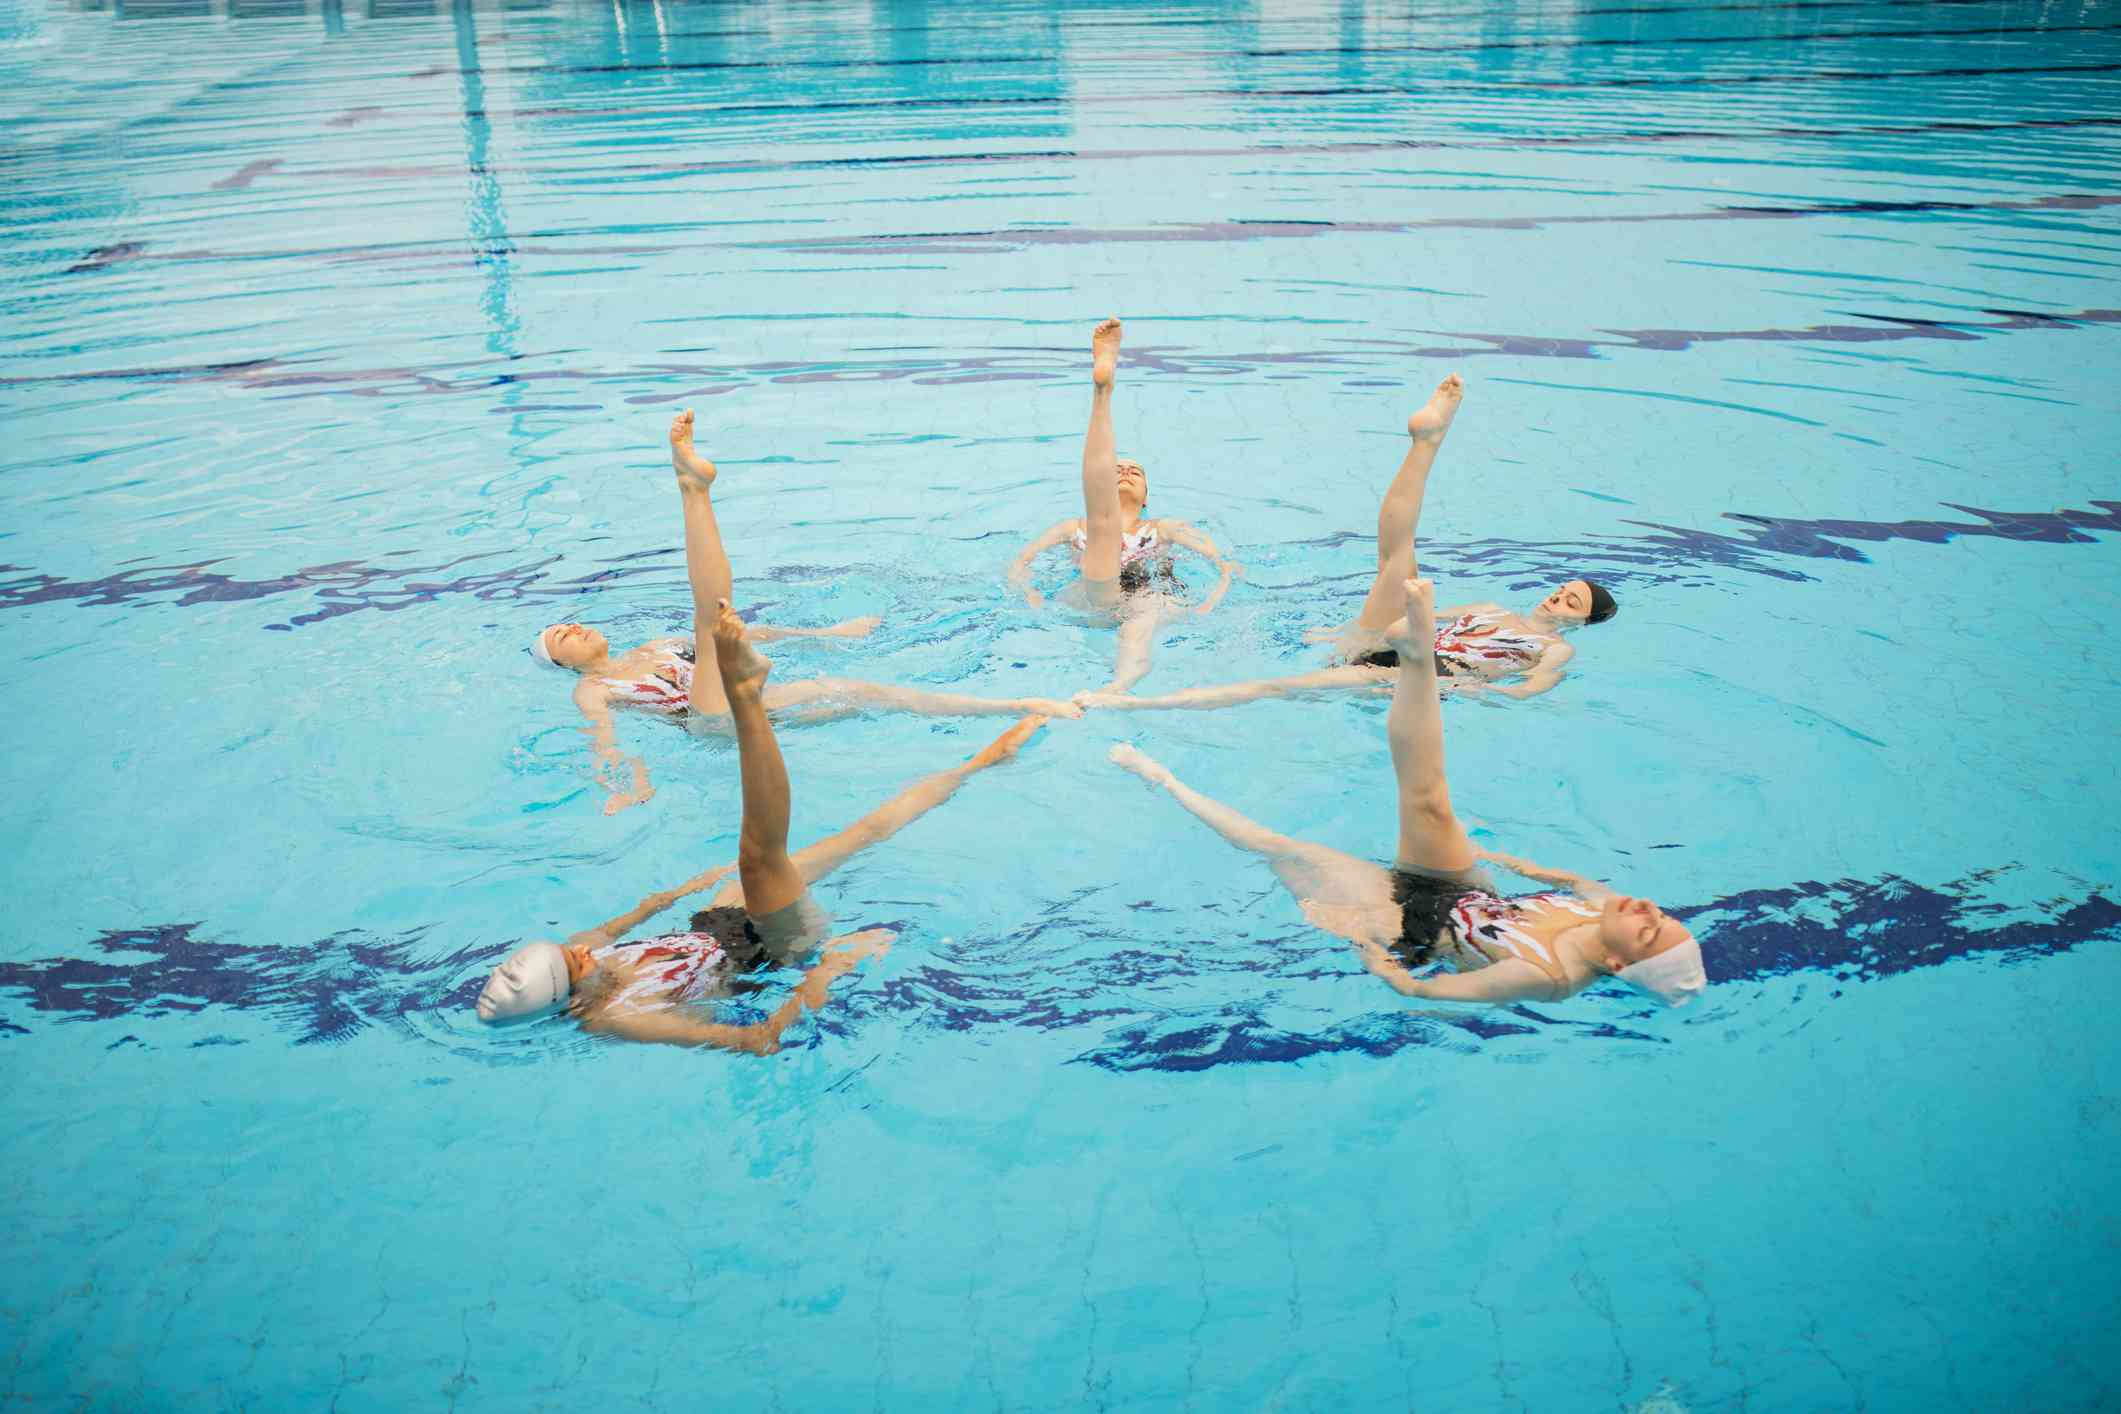 Girls practicing a synchronized swimming routine